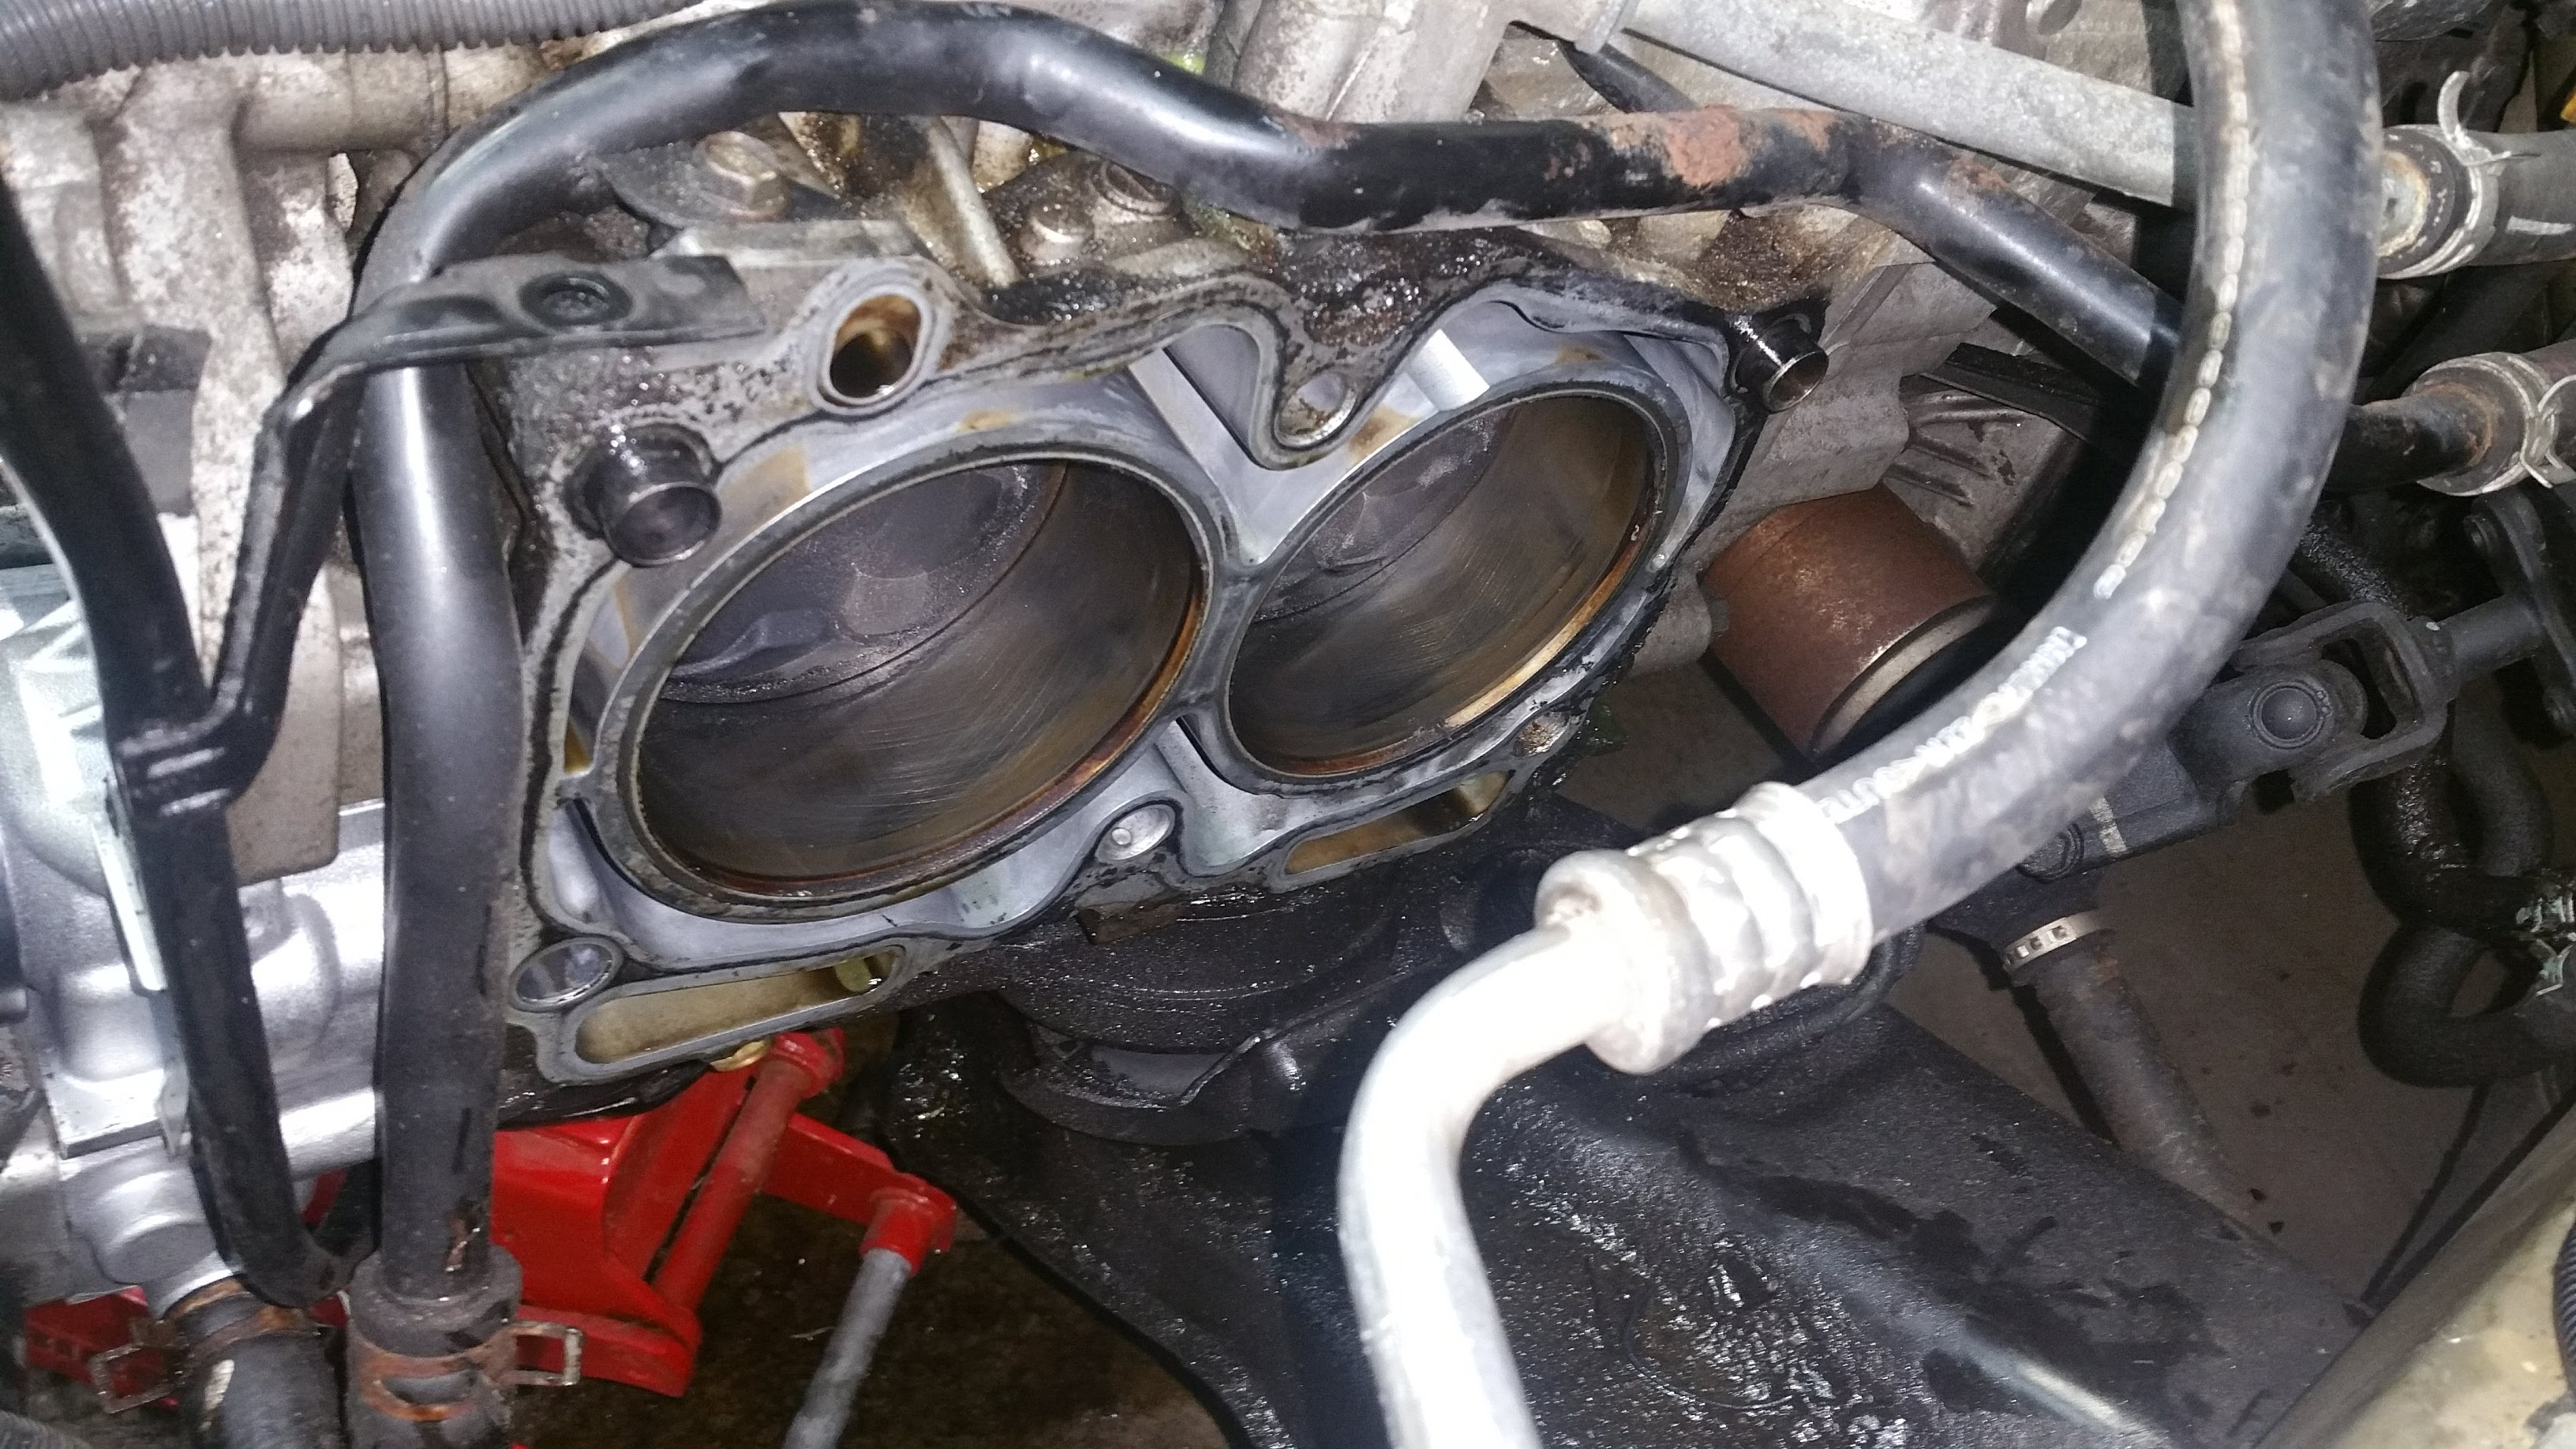 Signs Of A Blown Head Gasket >> 09 Blown Head Gasket? - Subaru Outback - Subaru Outback Forums